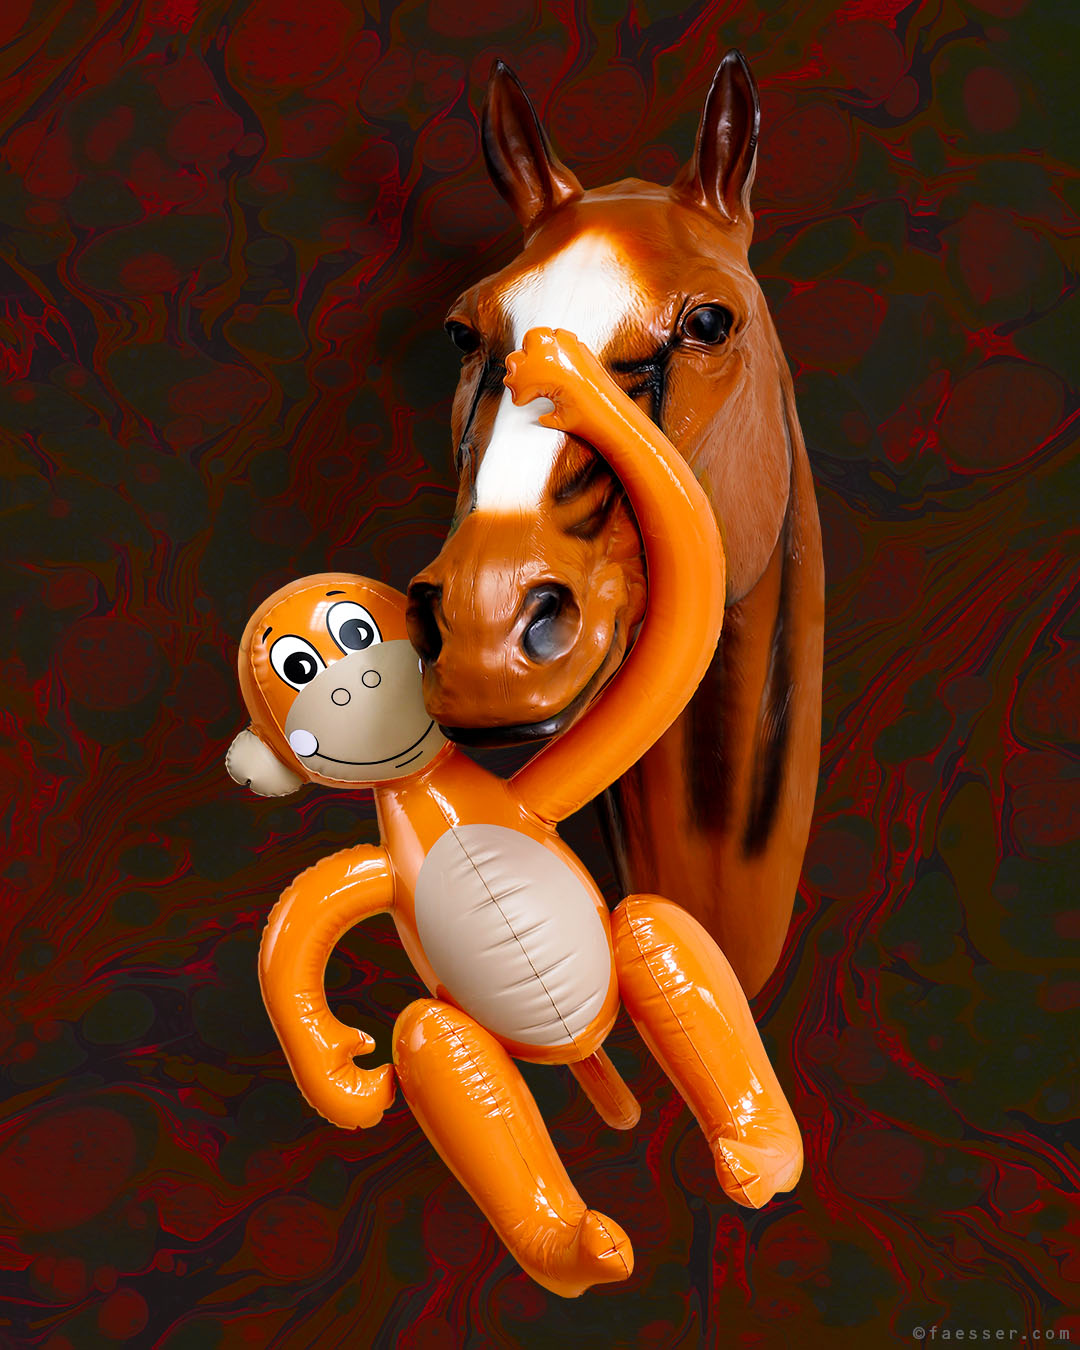 Horse Whisperer; Koons monkey as a horse whisperer in memory to Mr. Ed from an US comedy series; work of art as figurative sculpture; artist Roland Faesser, sculptor and painter 2016